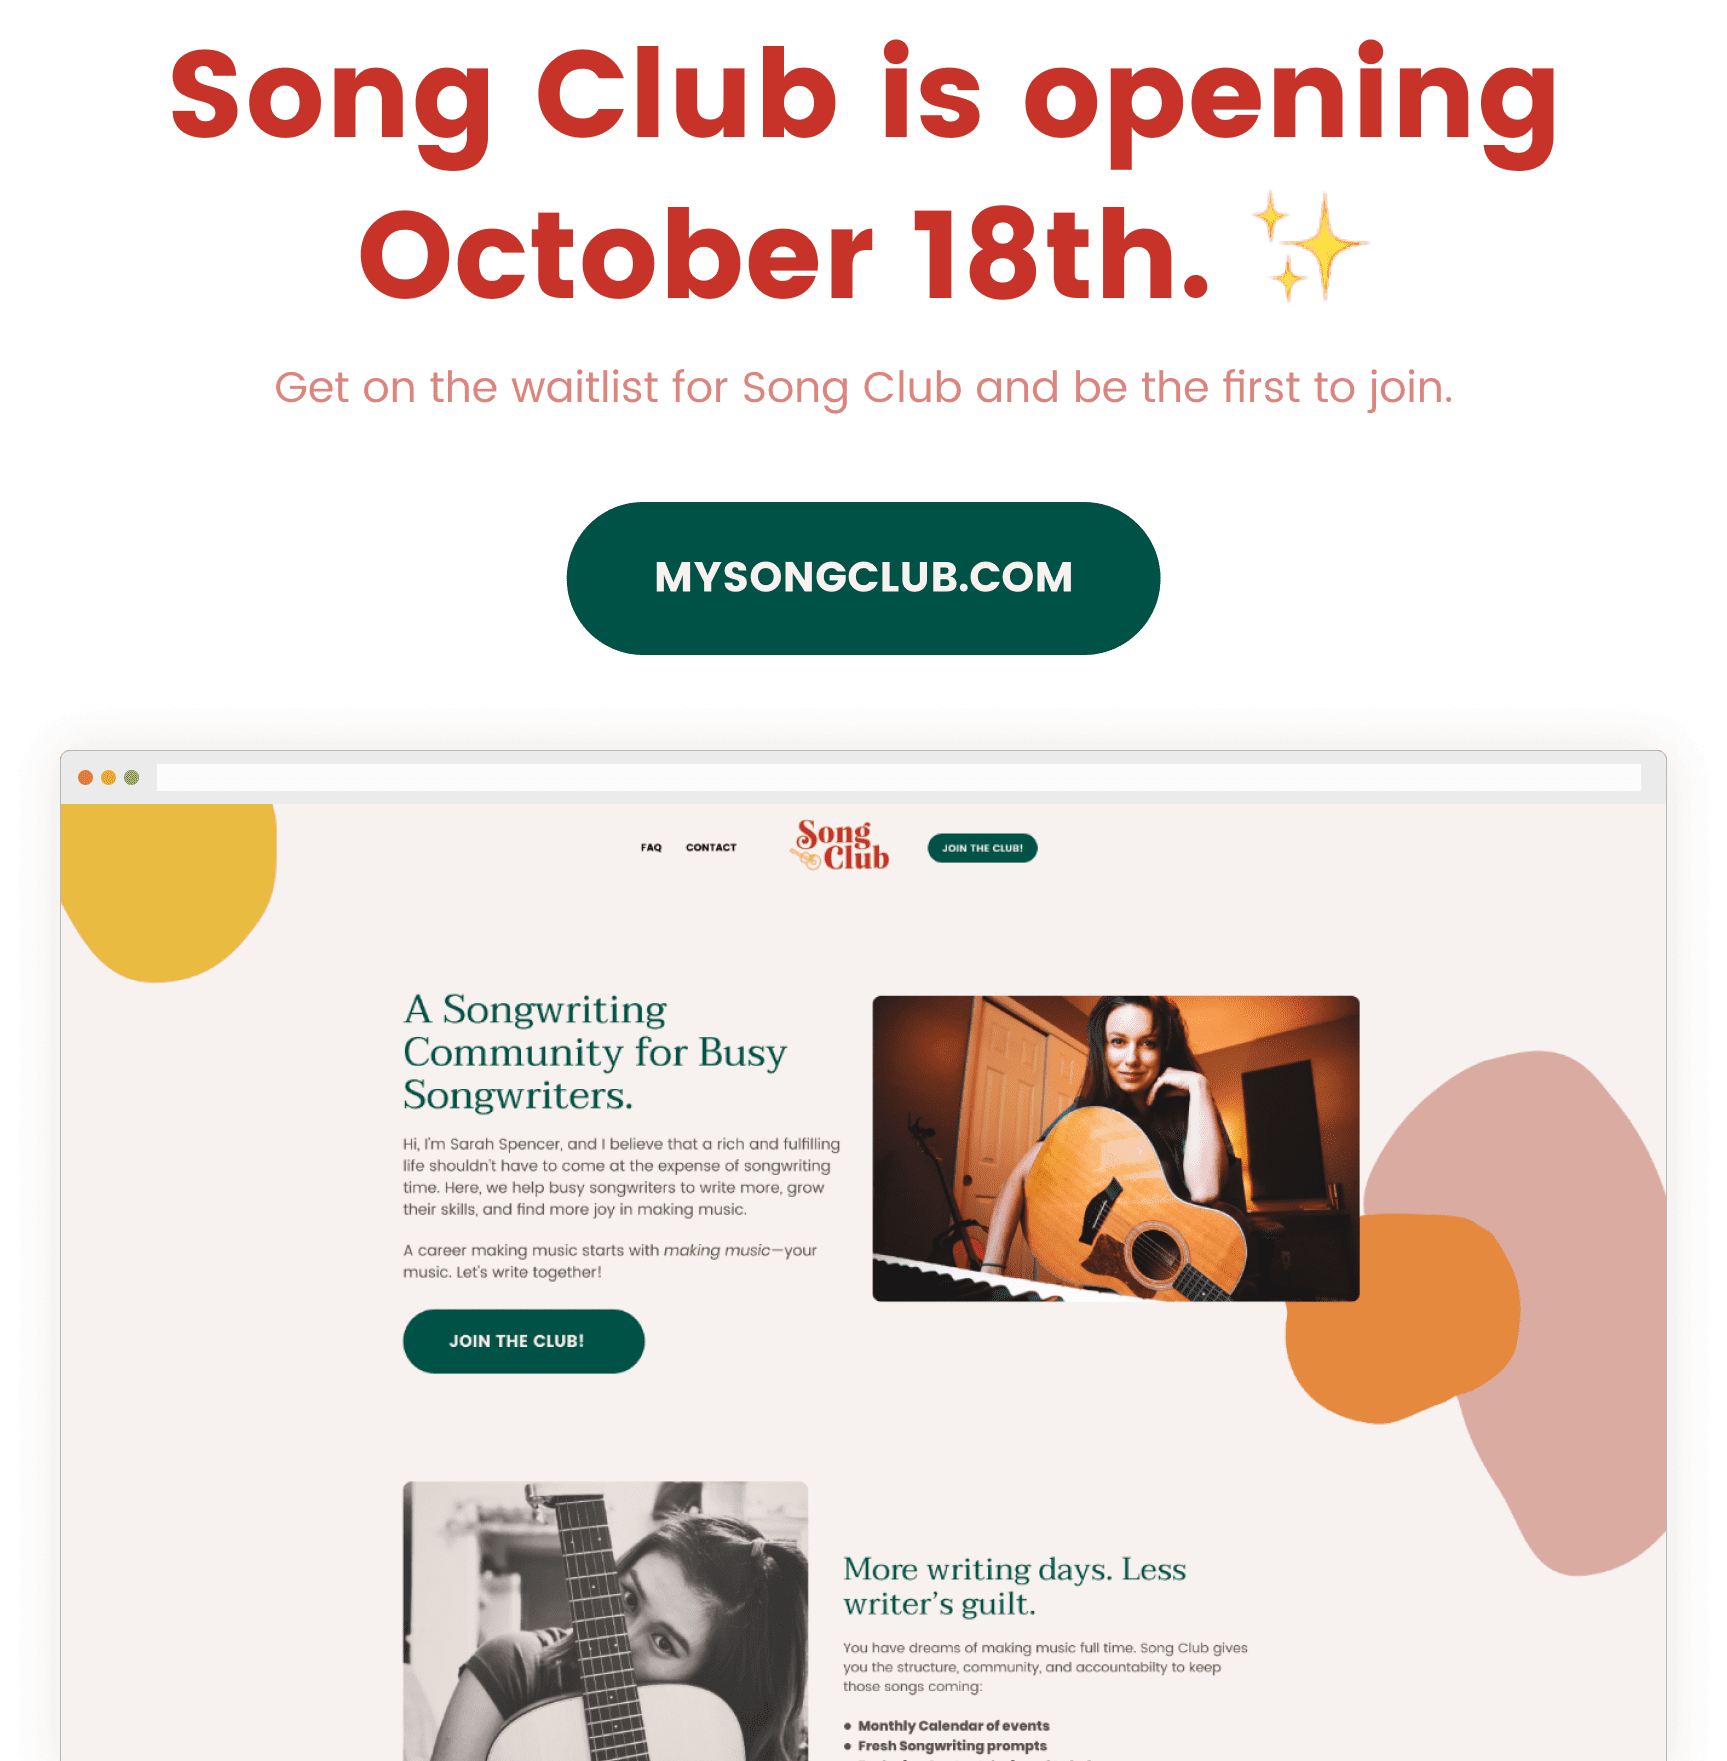 Join the club and get instant access to all Song Club has to offer: dive into inspiring content, and vibrant community of songwriter friends. Come on in!